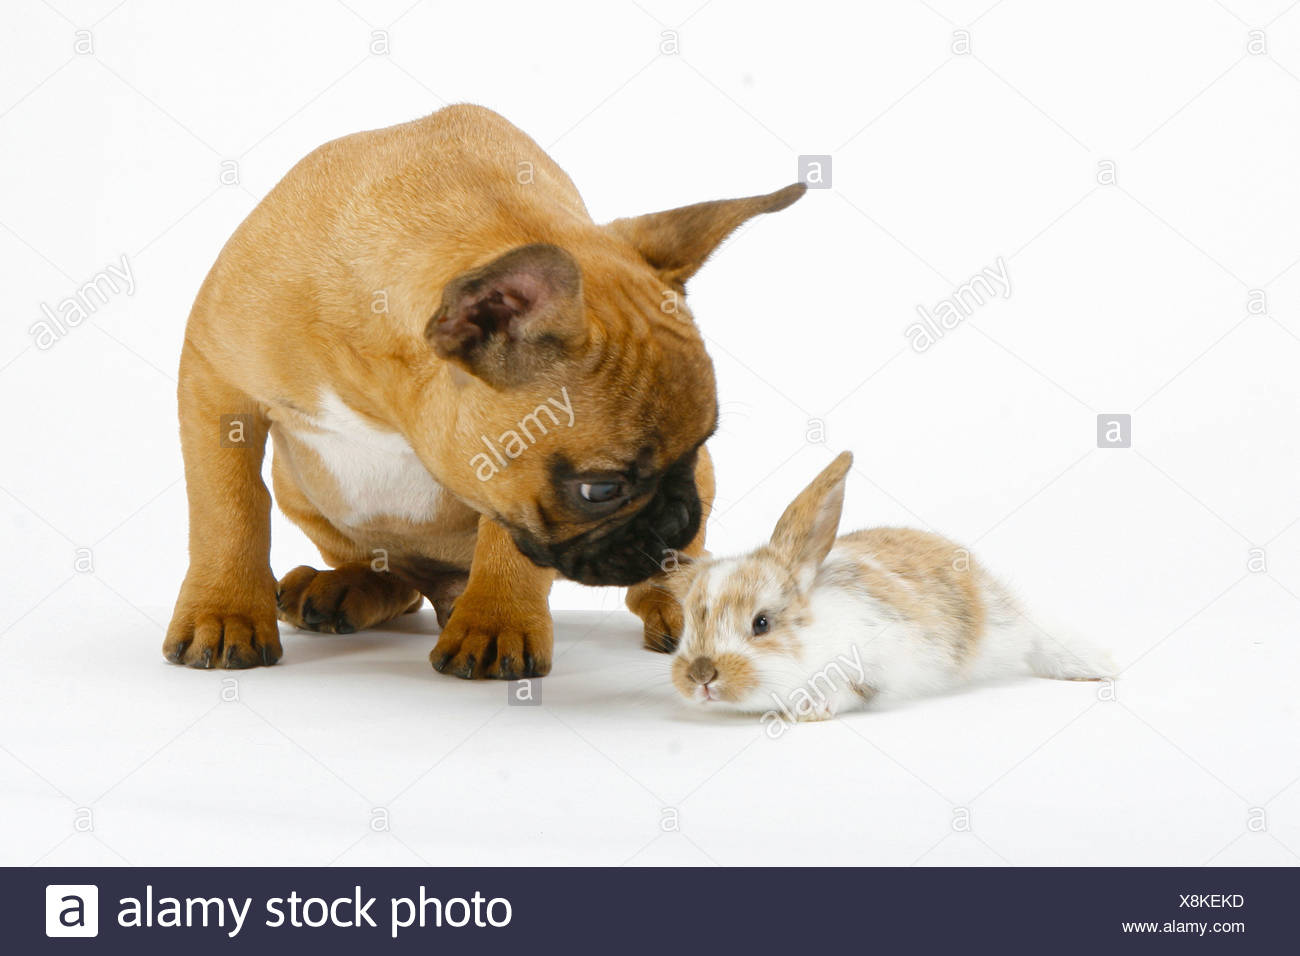 9e169f84bb2e French Rabbits Photos   French Rabbits Images - Alamy